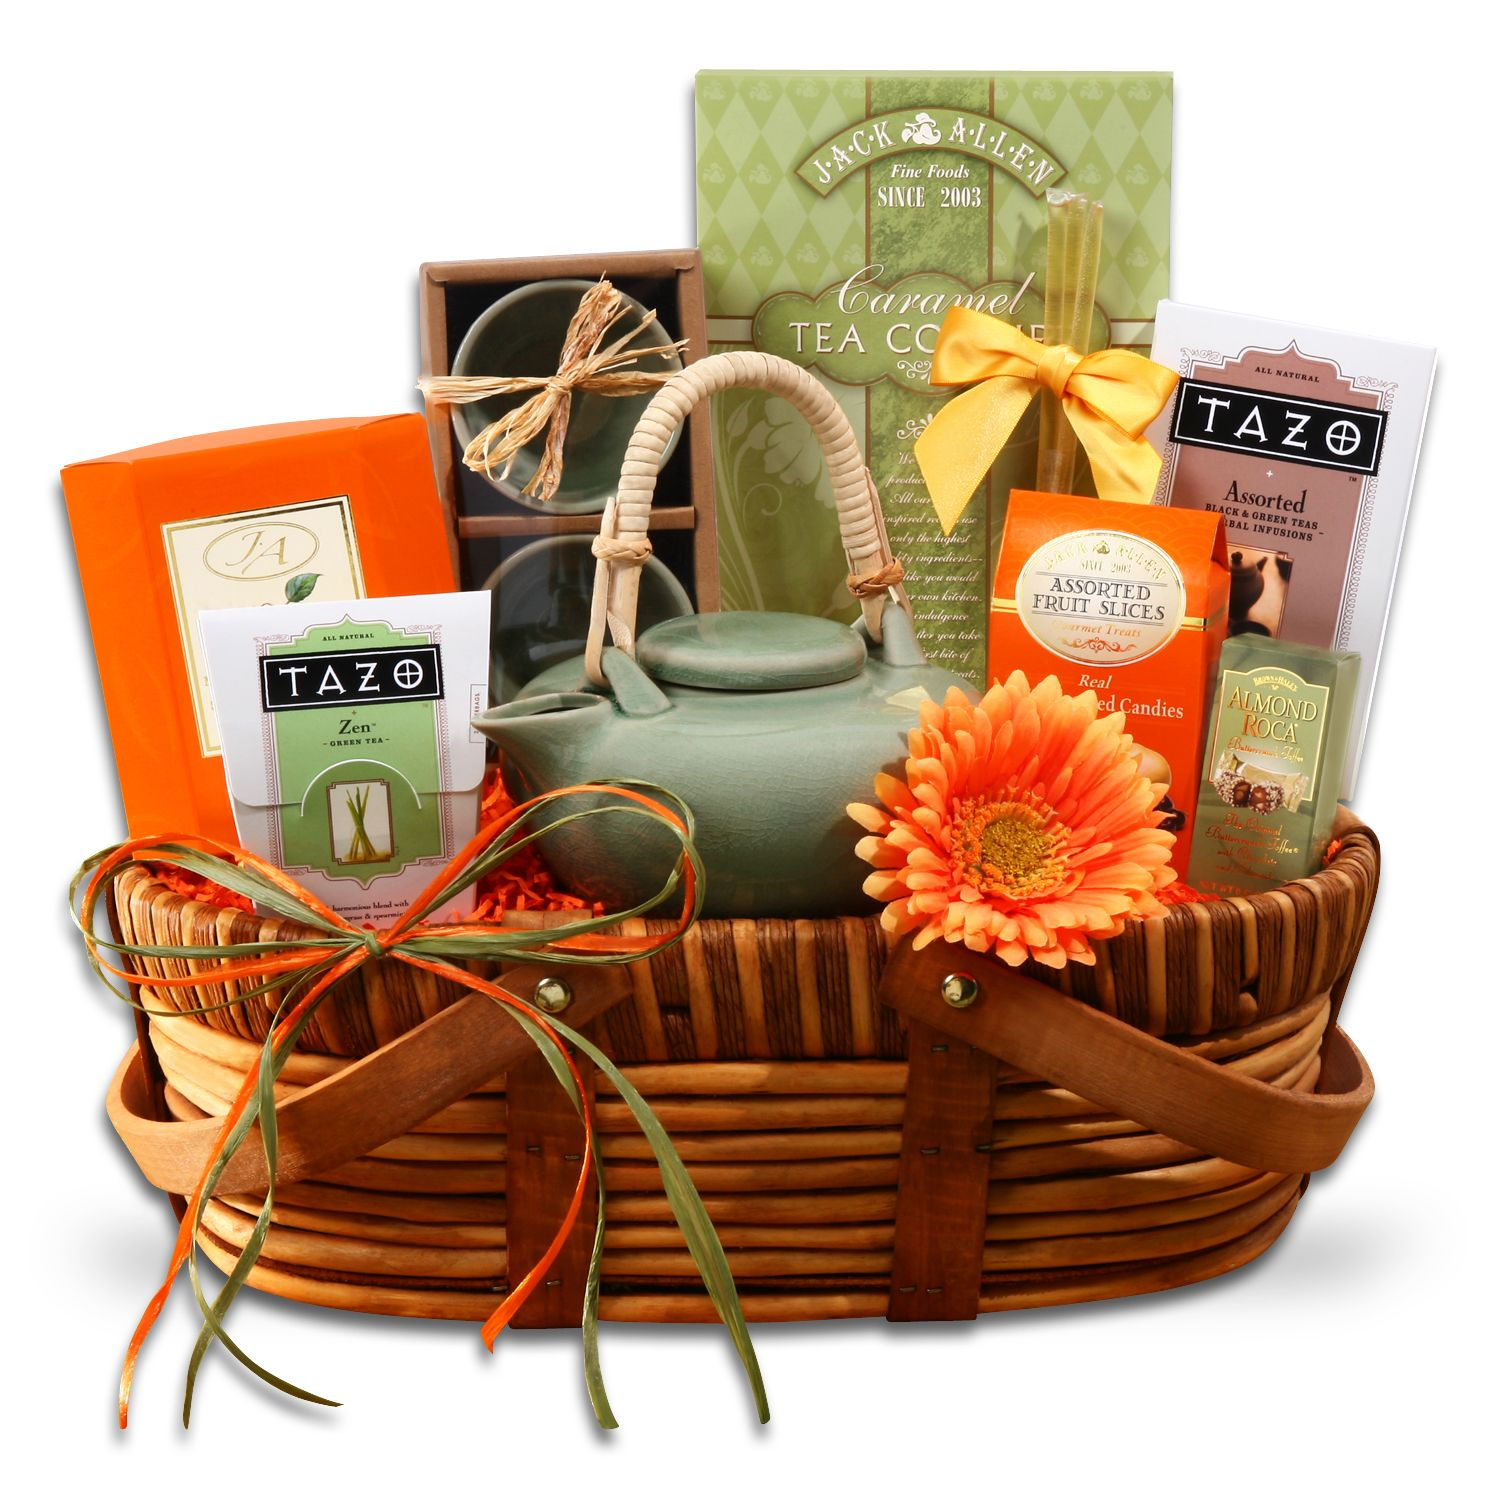 A time for tazo tea tea gift baskets best gift baskets